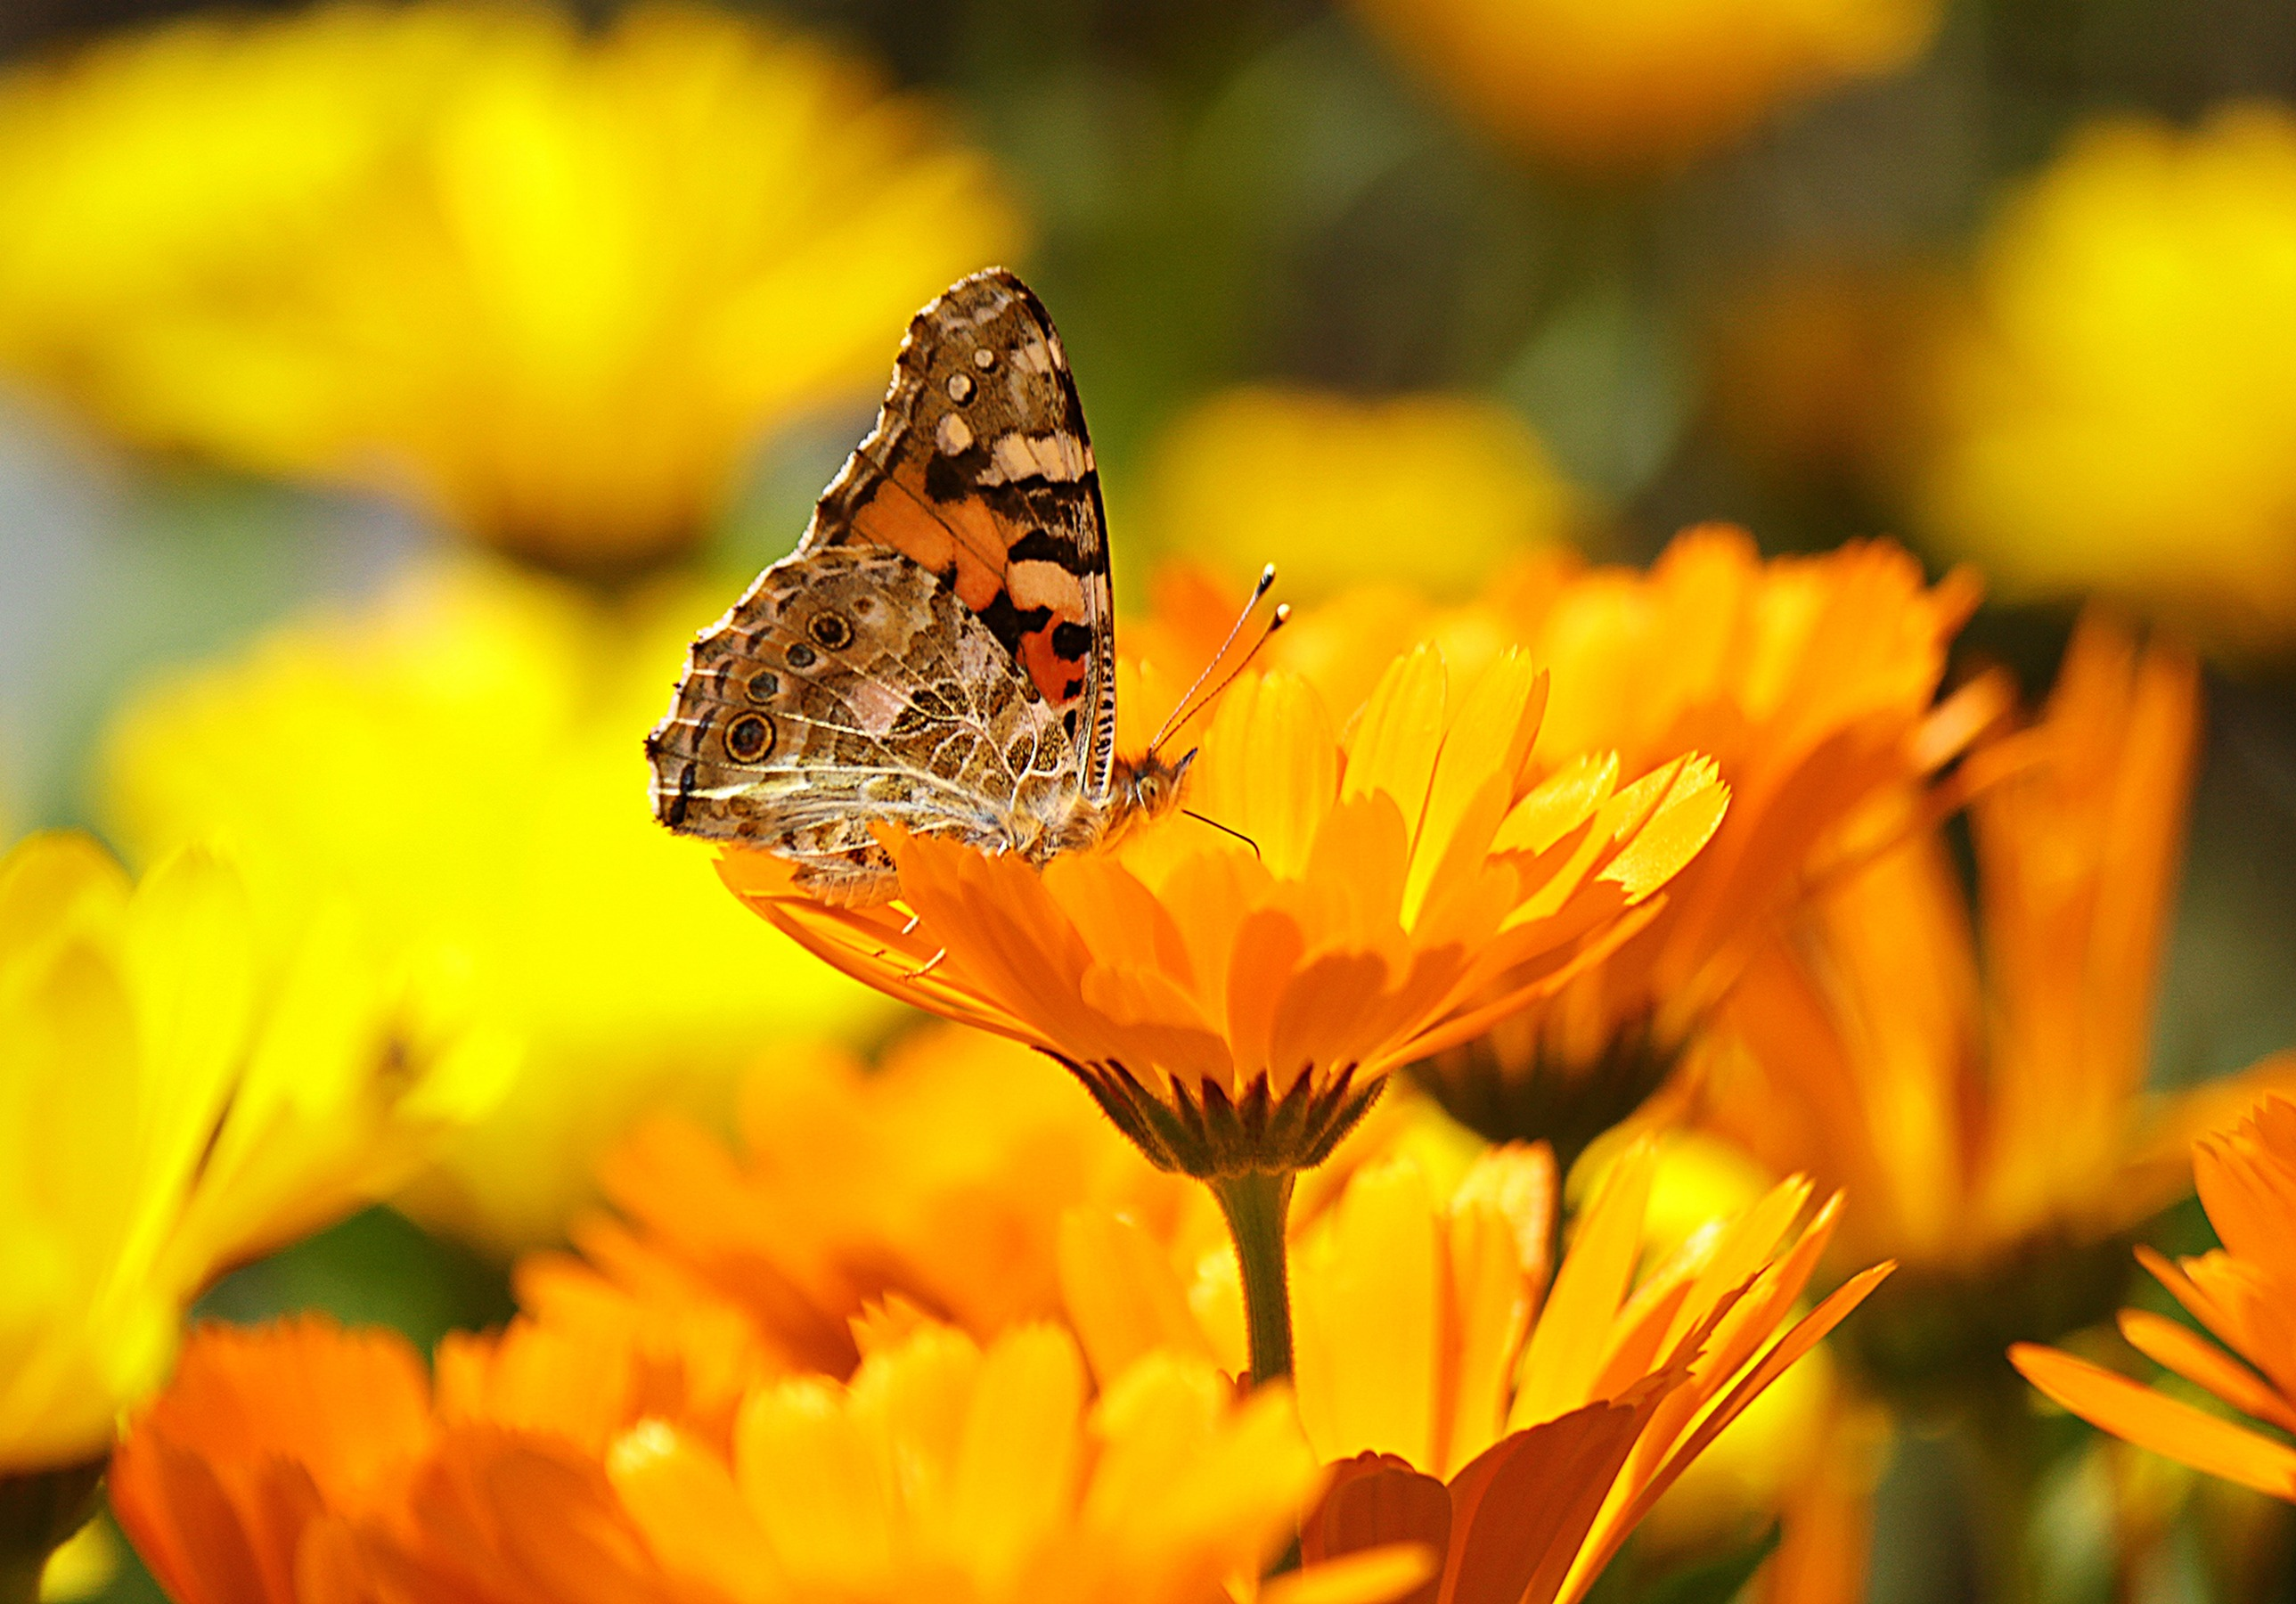 butterfly-yellow-insect-nature-65255.jpeg